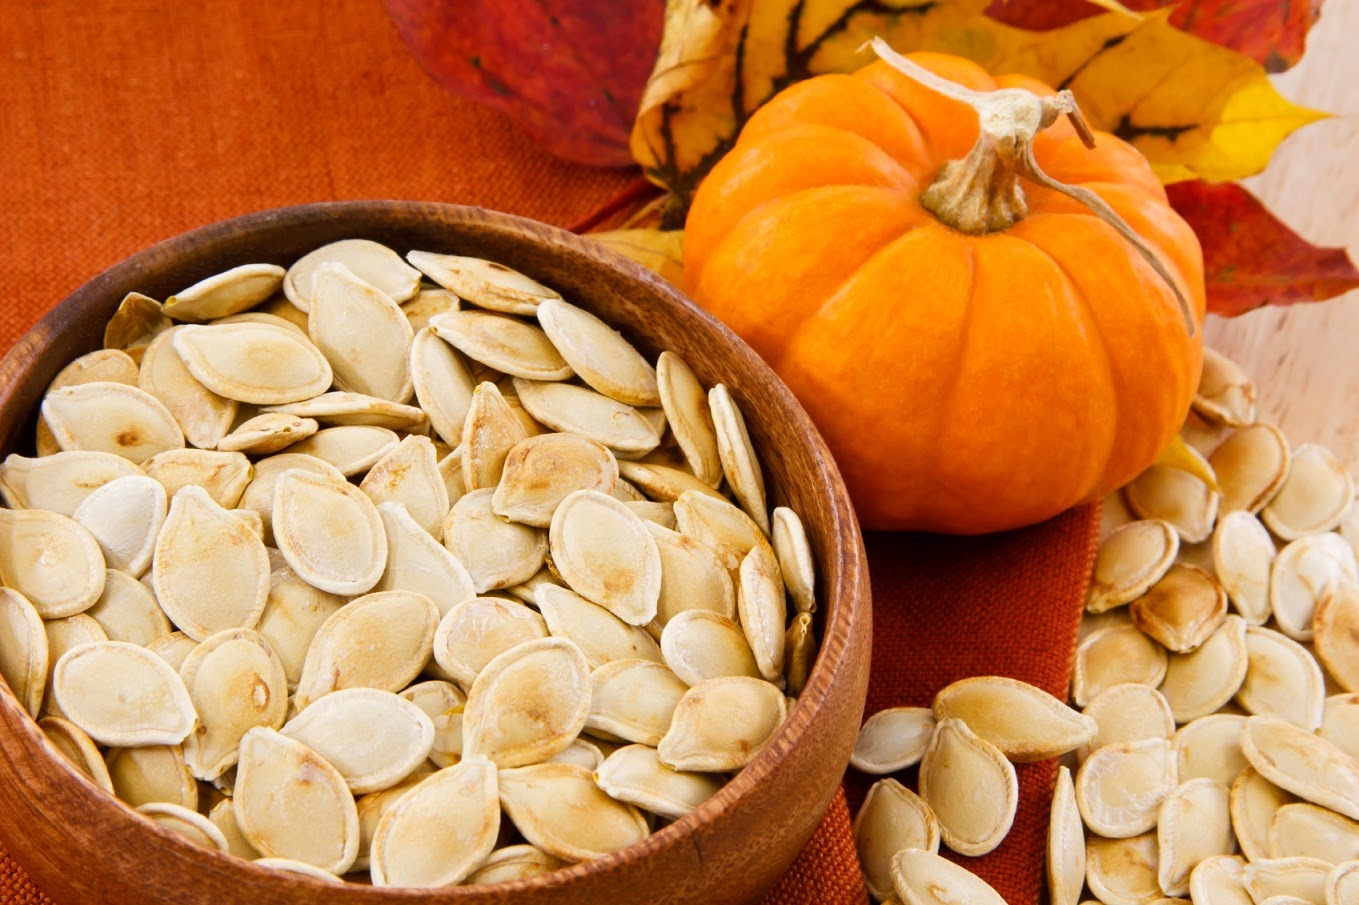 Pumpkin seeds in container